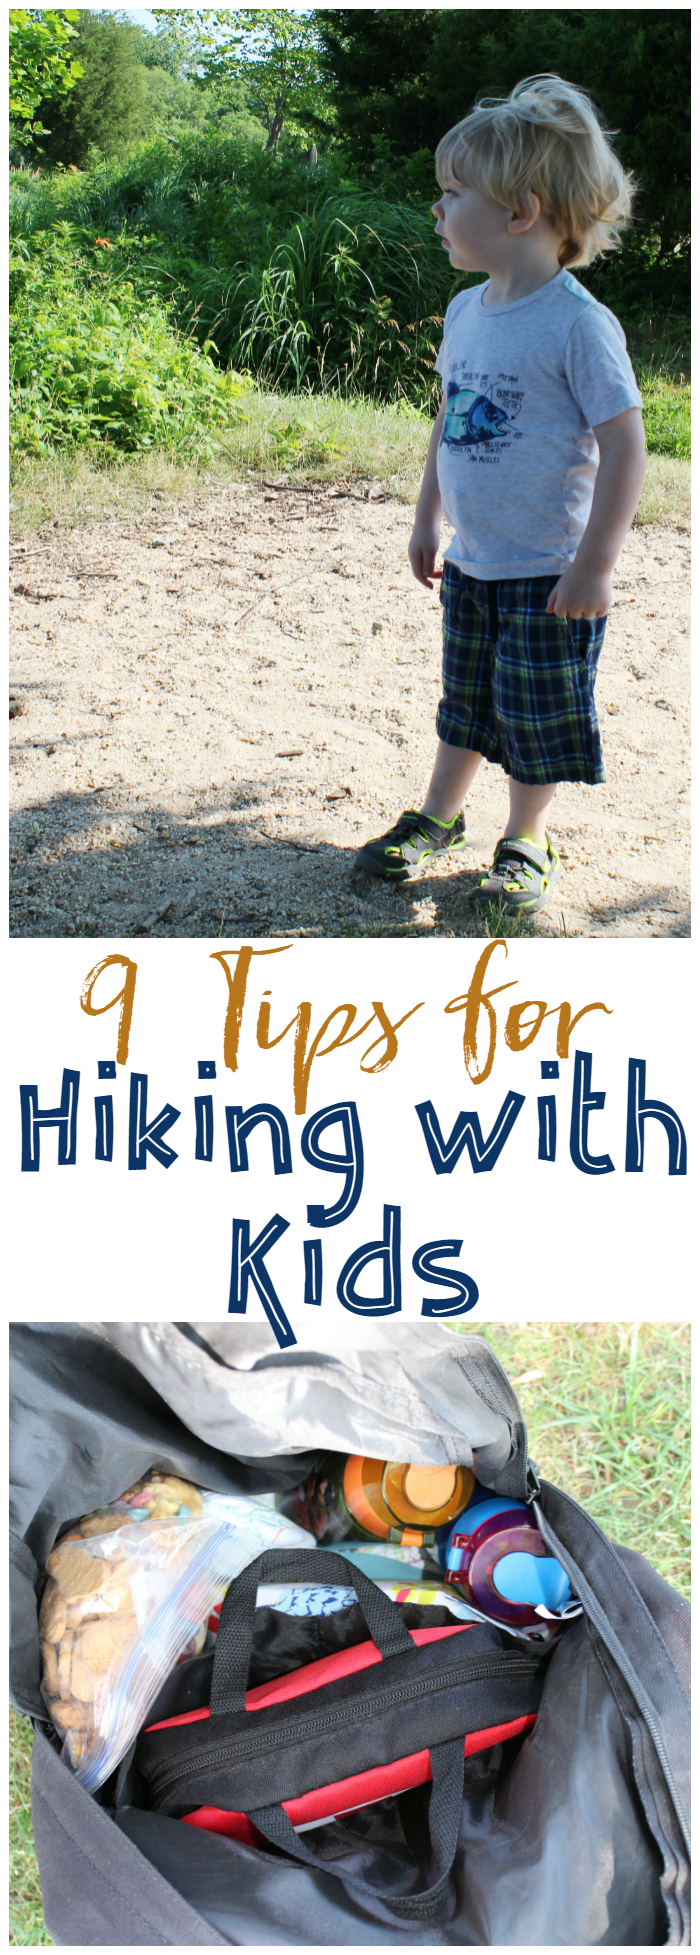 9 tips for hiking with kids - Hiking is one of those activities that is really fun for the whole family. If you're hiking with kids, check out our tips to make it a great experience for everyone.